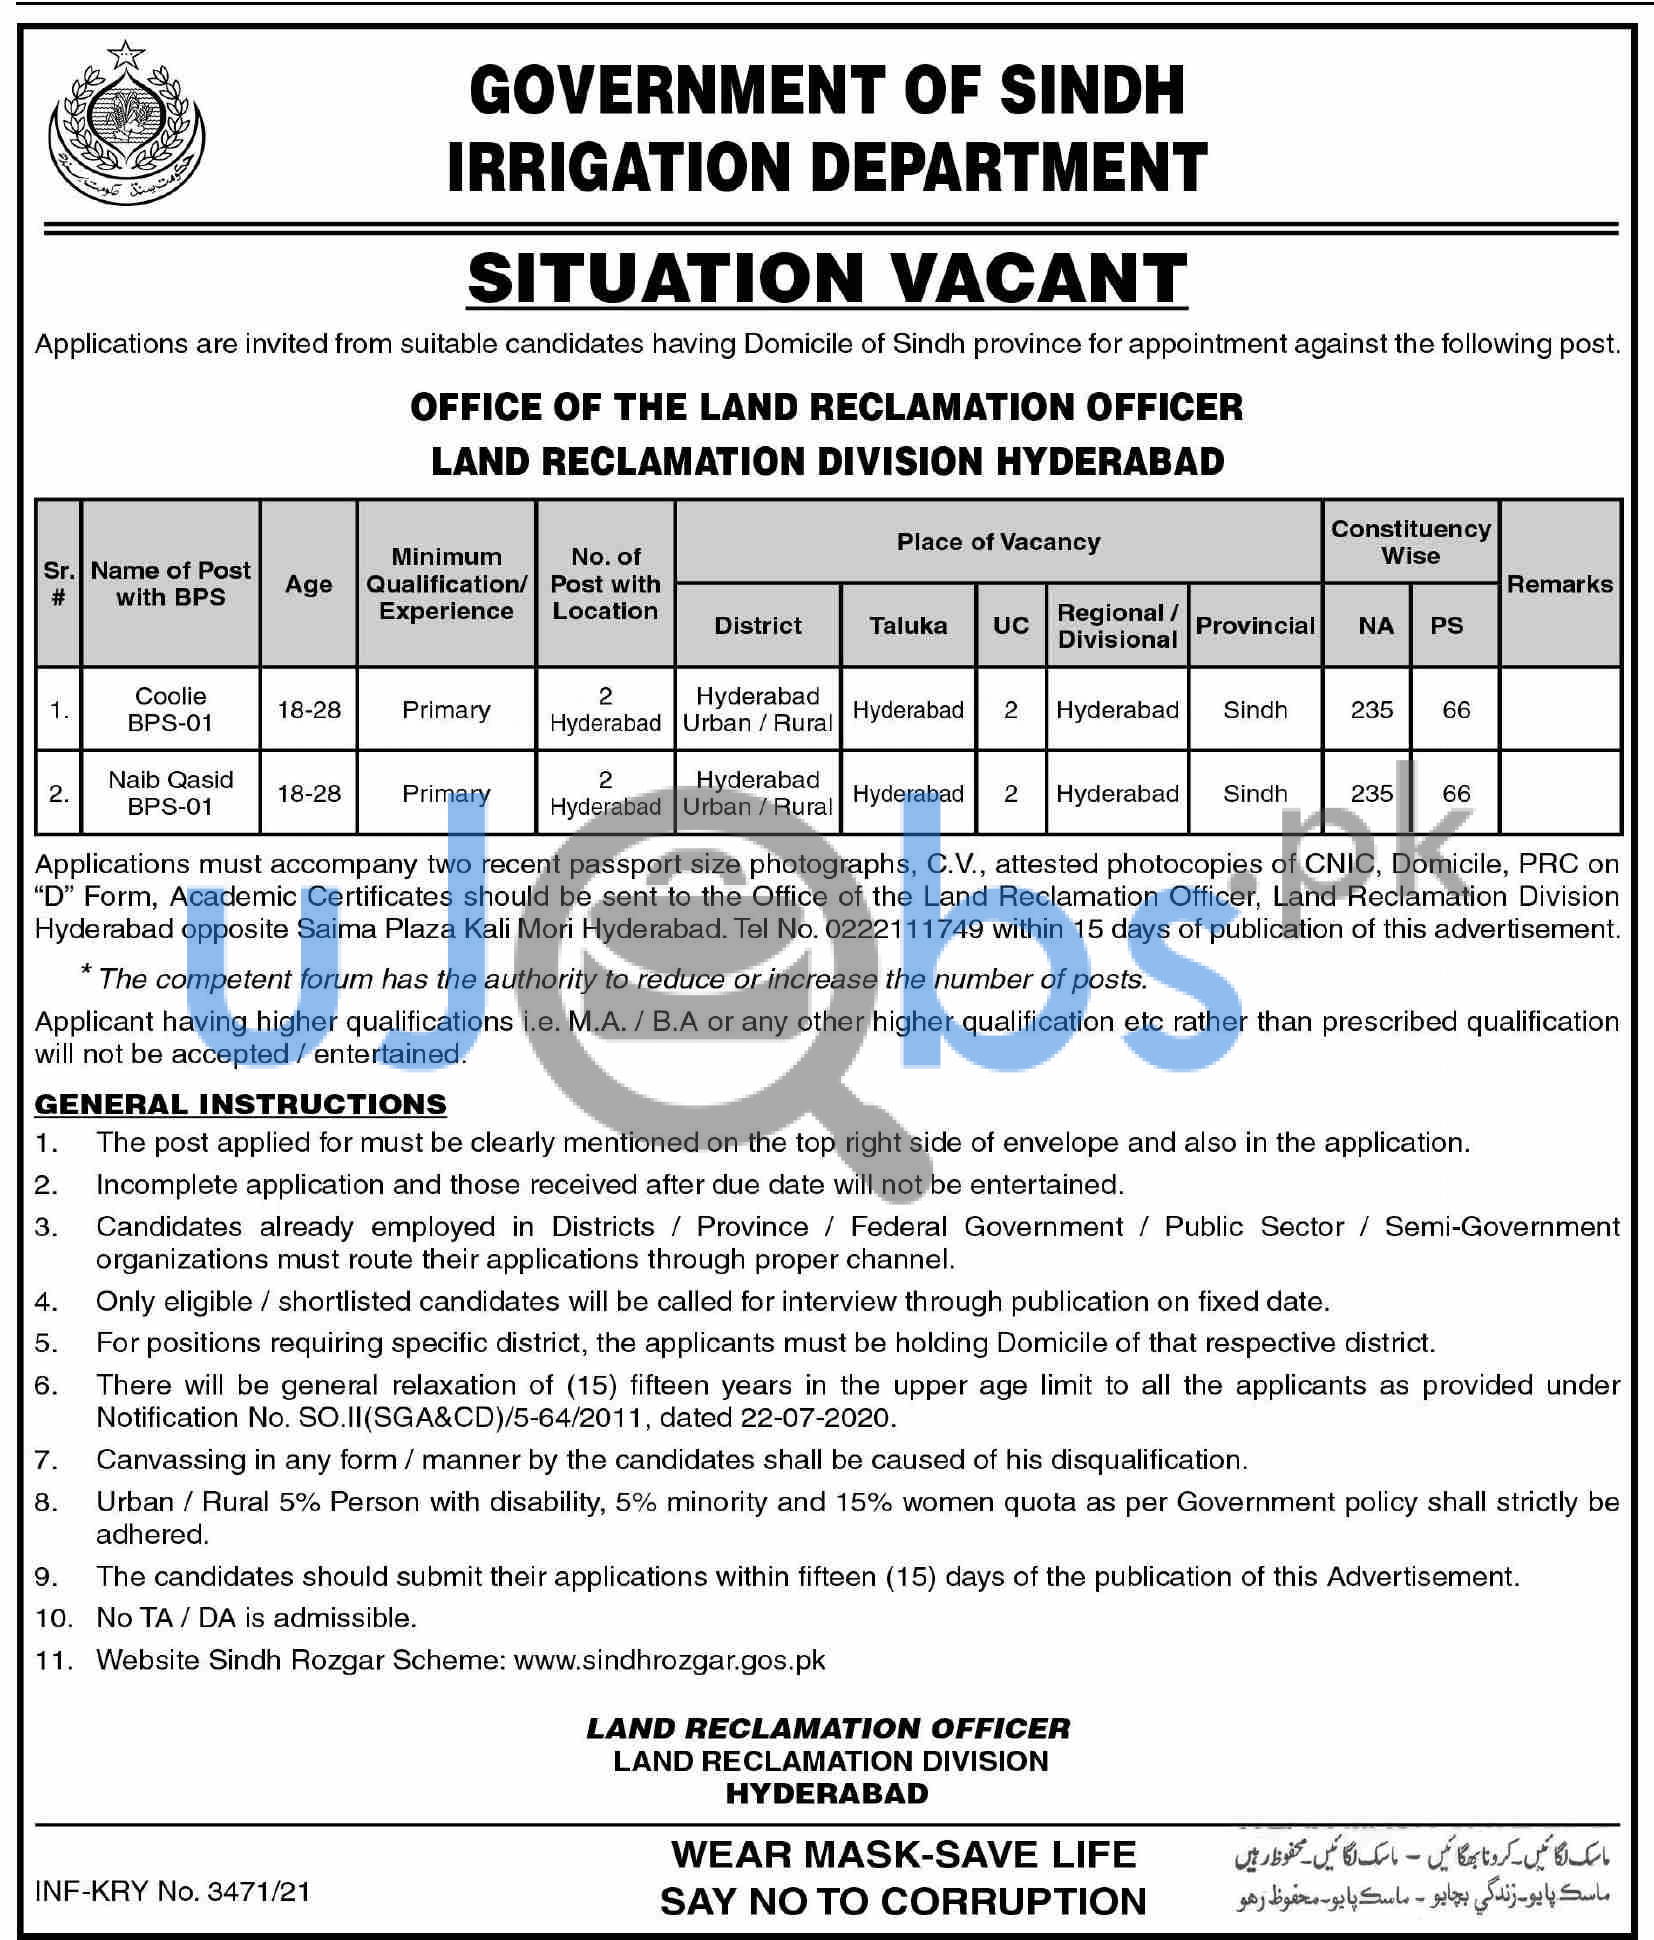 Government of Sindh Irrigation Department Hydrabad Jobs 2021